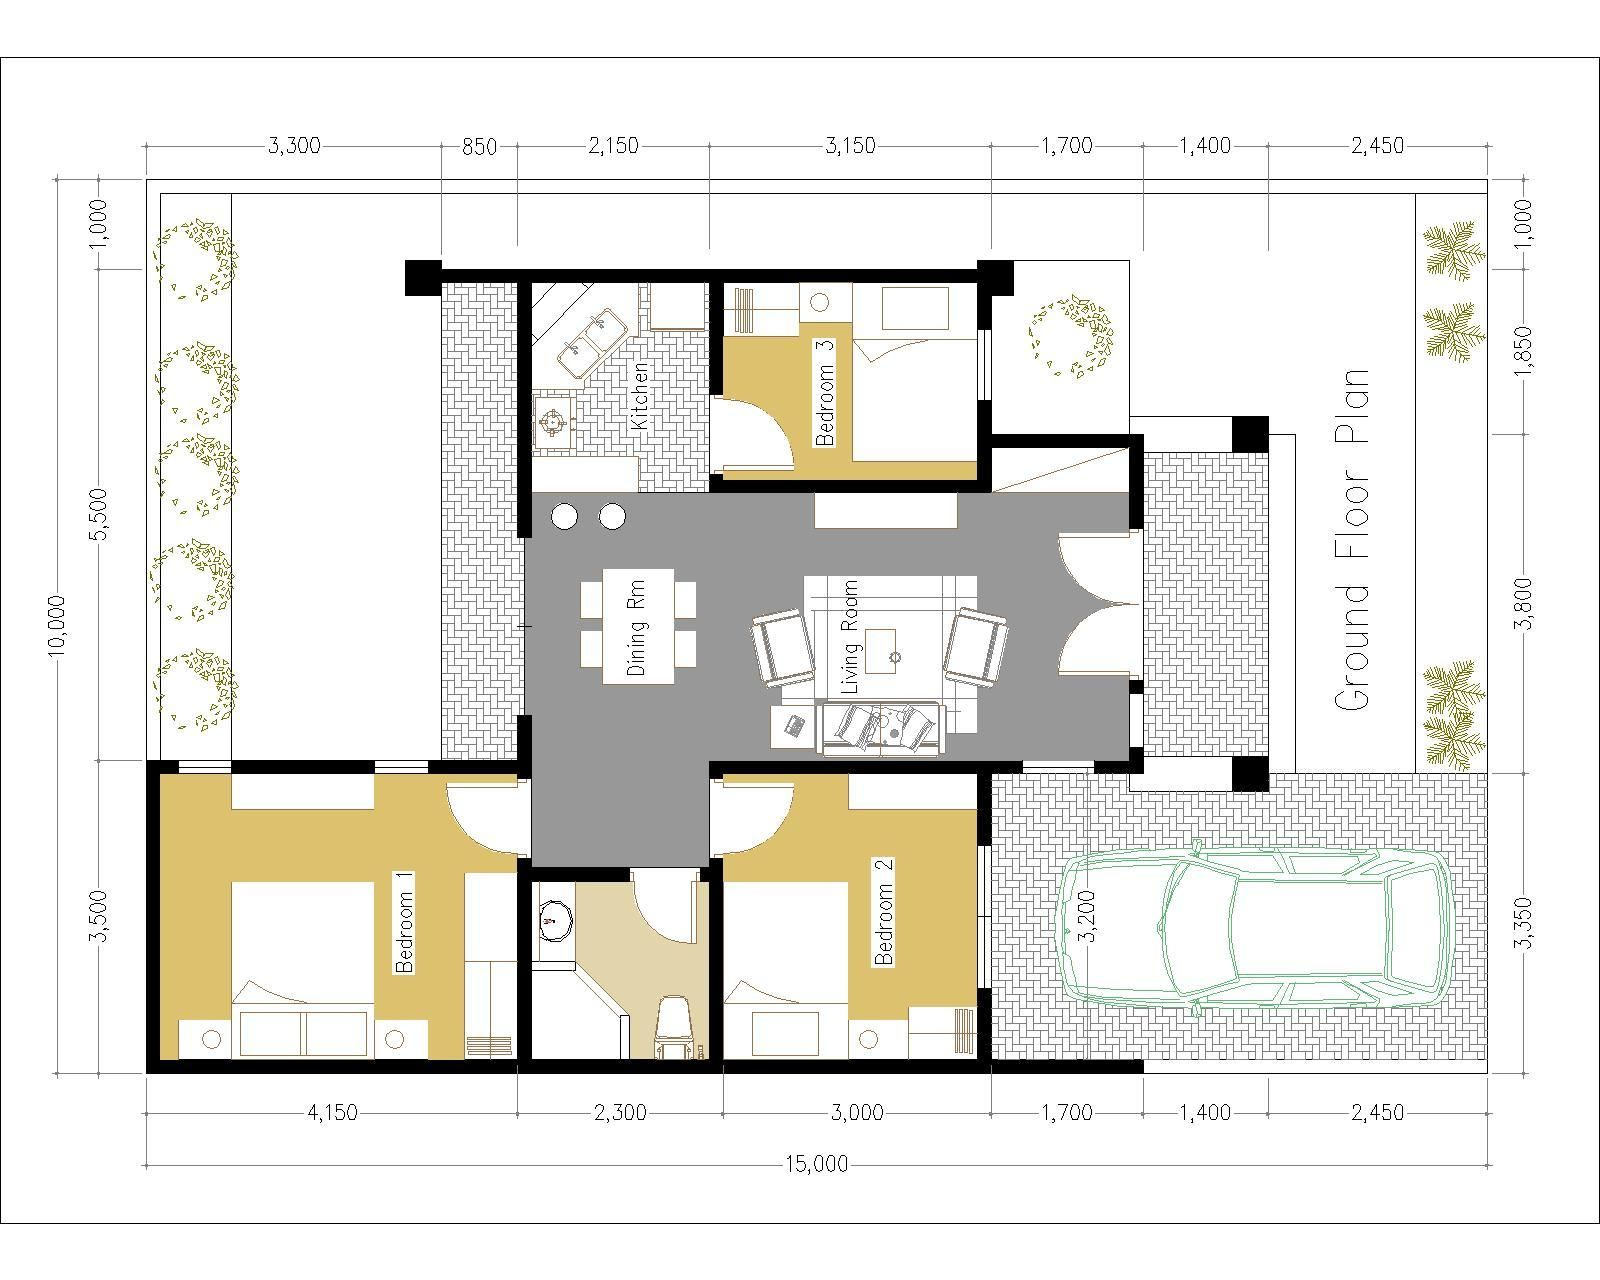 One Story House With 3 Bedroom 10x15m Samphoas Plan One Level House Plans House Plans Bedroom House Plans